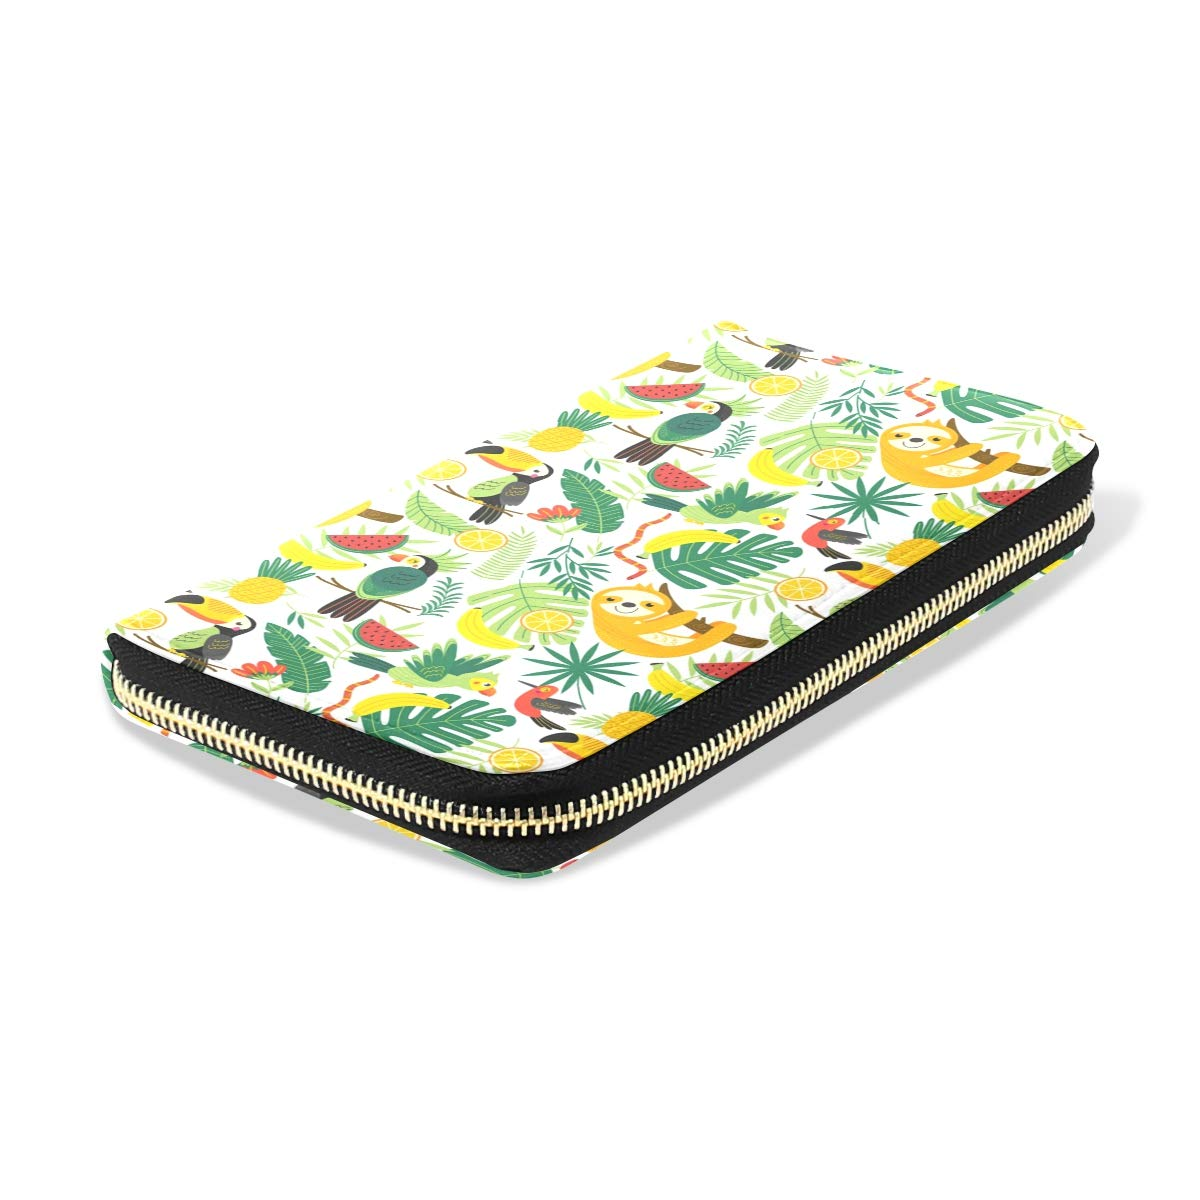 Women Tropical Animals Yellow Leather Wallet Large Capacity Zipper Travel Wristlet Bags Clutch Cellphone Bag